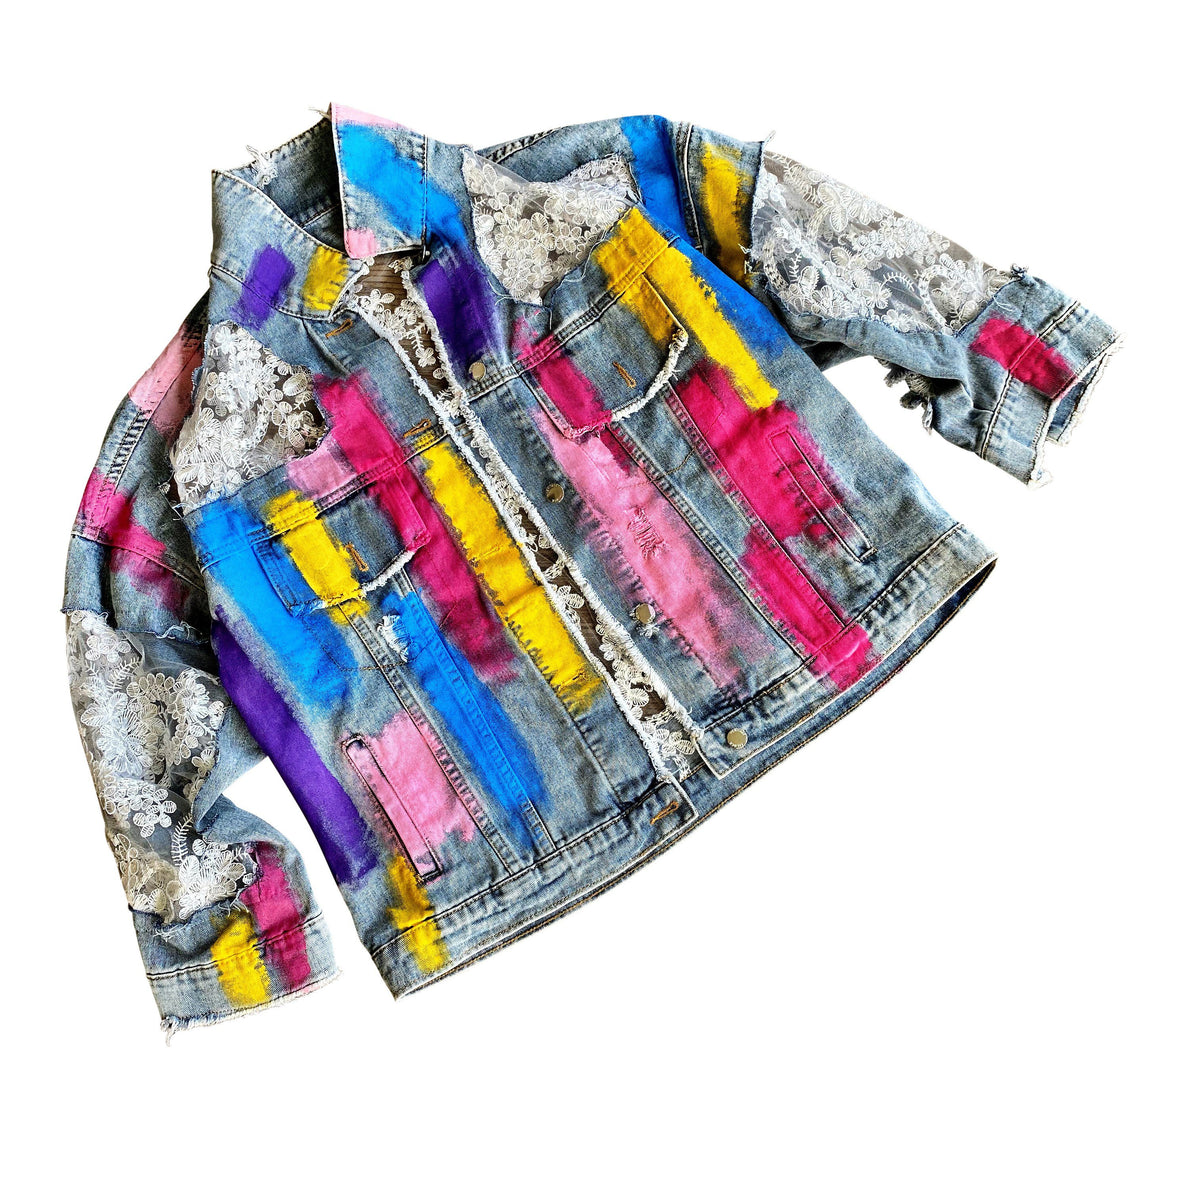 'RAINBOWS AND LACE' DENIM JACKET